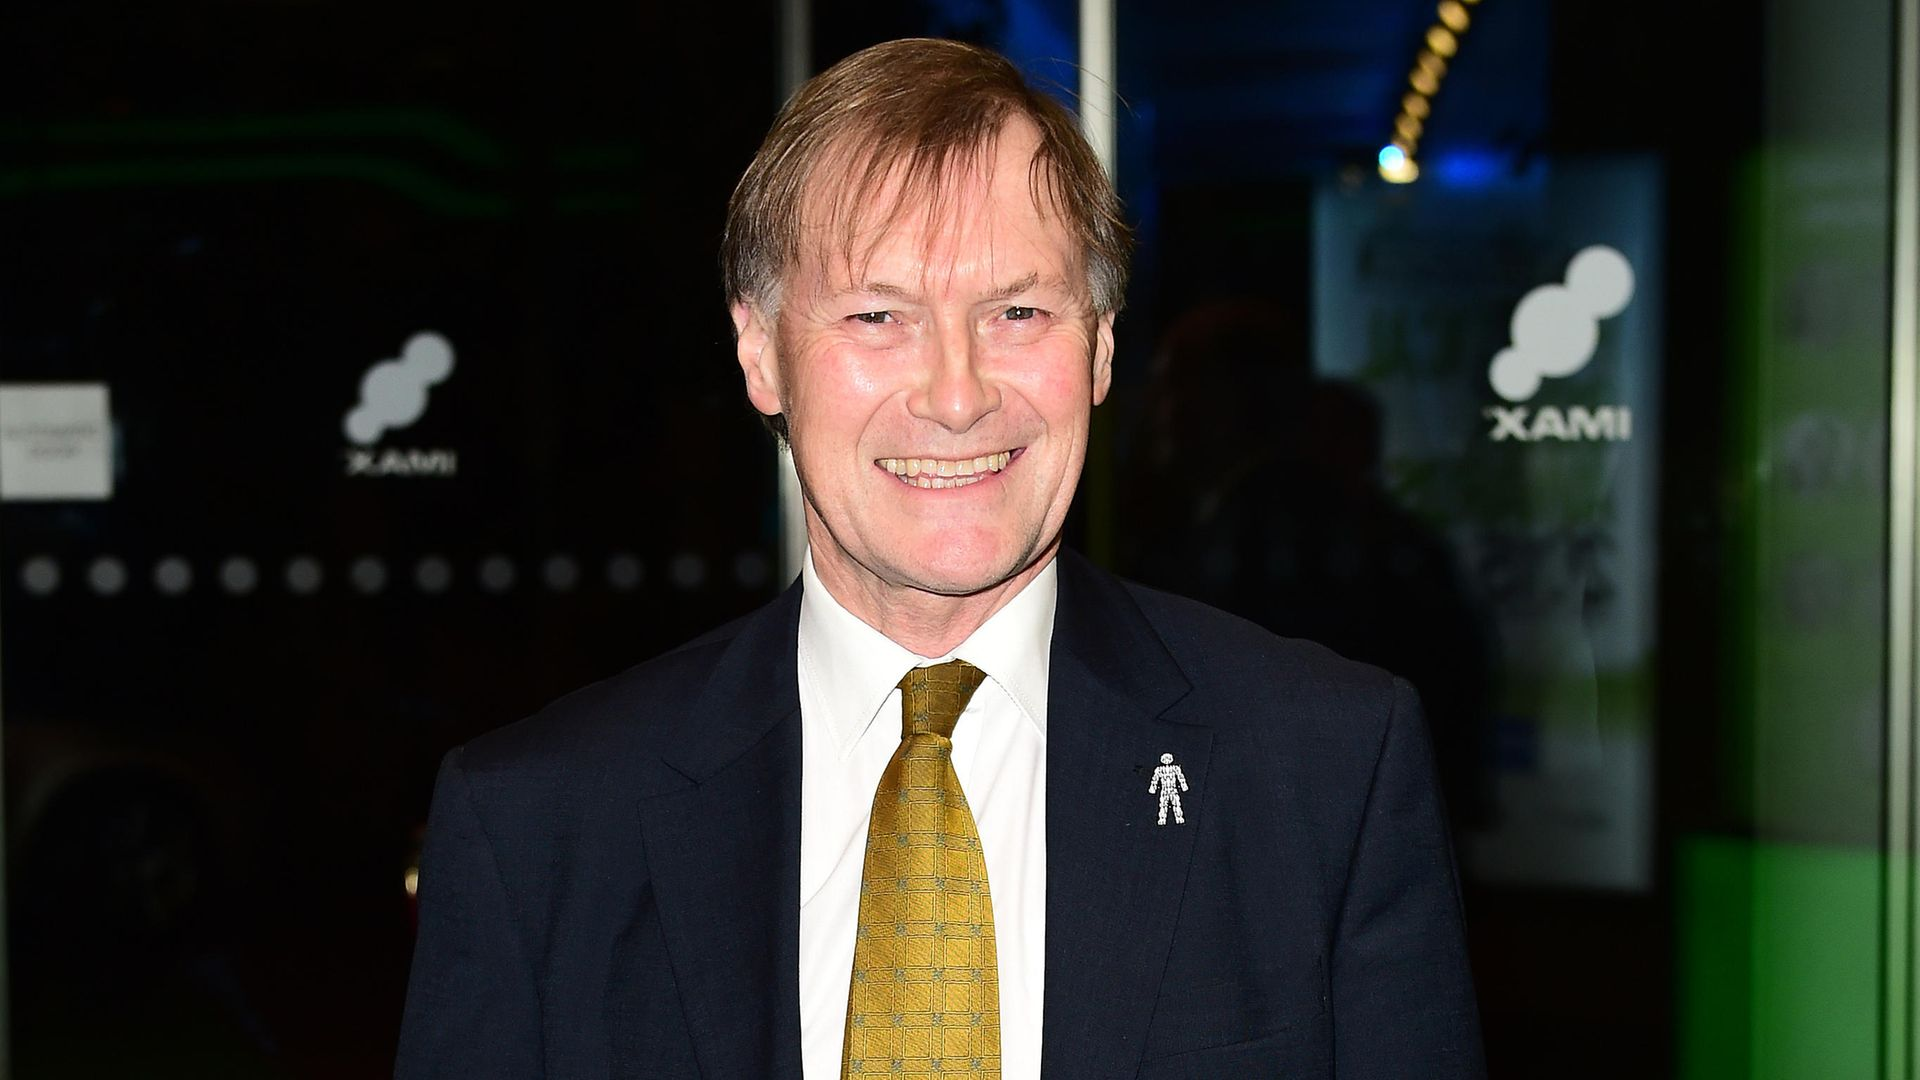 Tory MP Sir David Amess (pictured above) has had his office targeted by protesters - Credit: PA